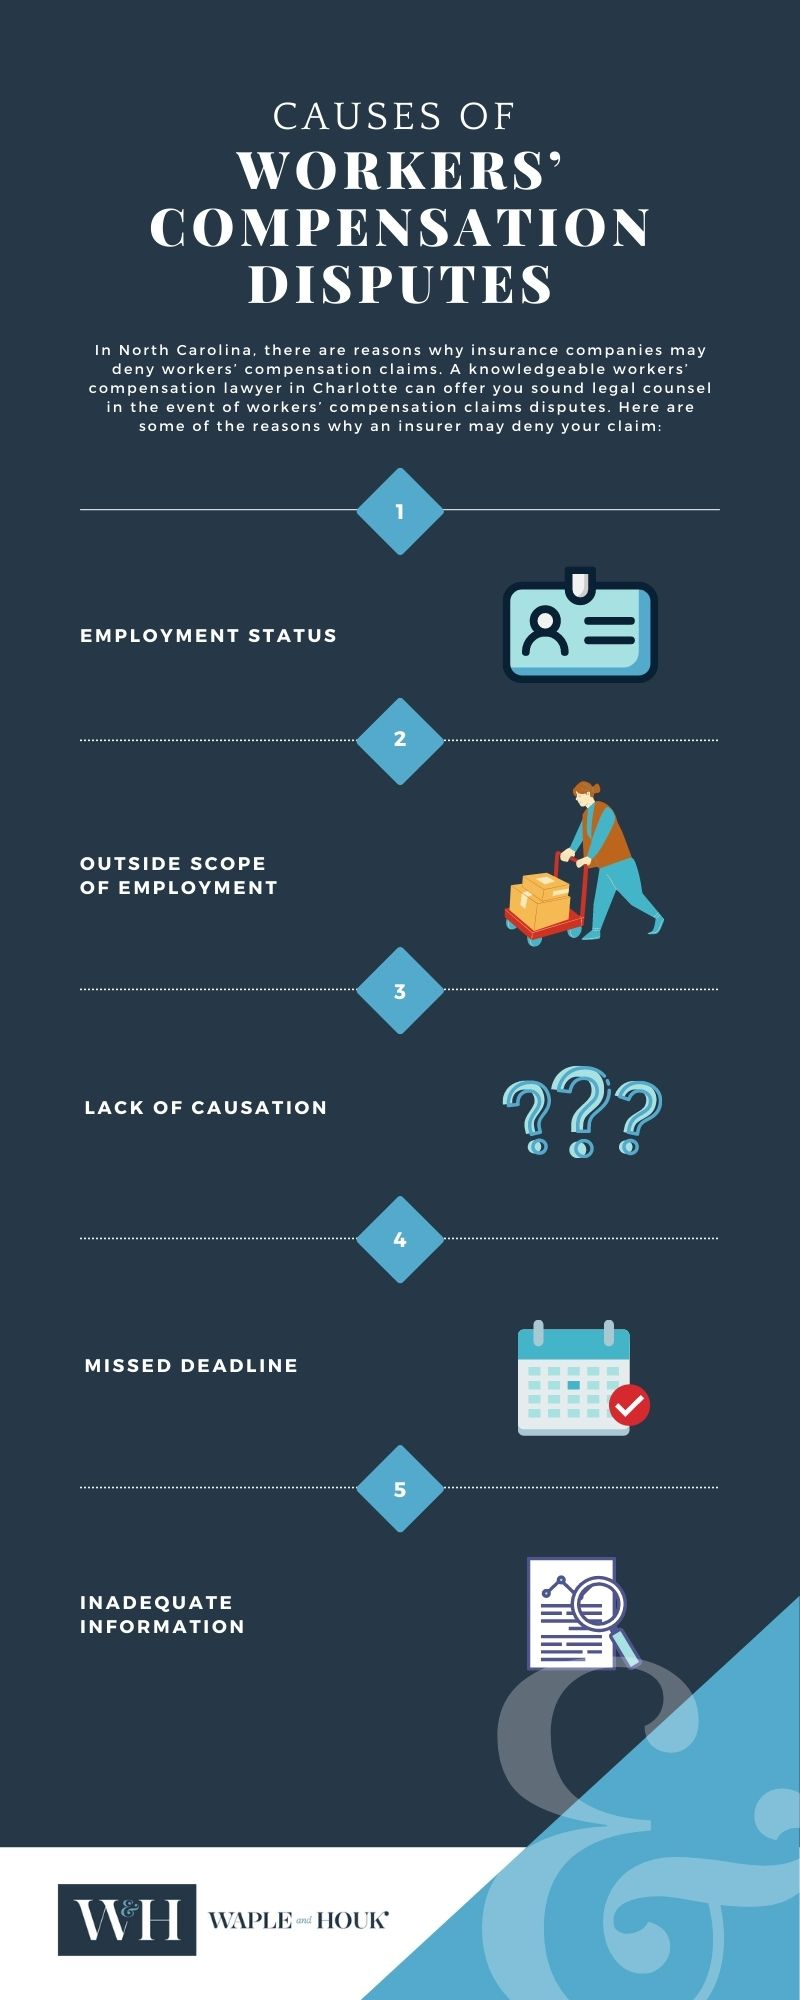 Charlotte Workers Compensation Disputes Infographic